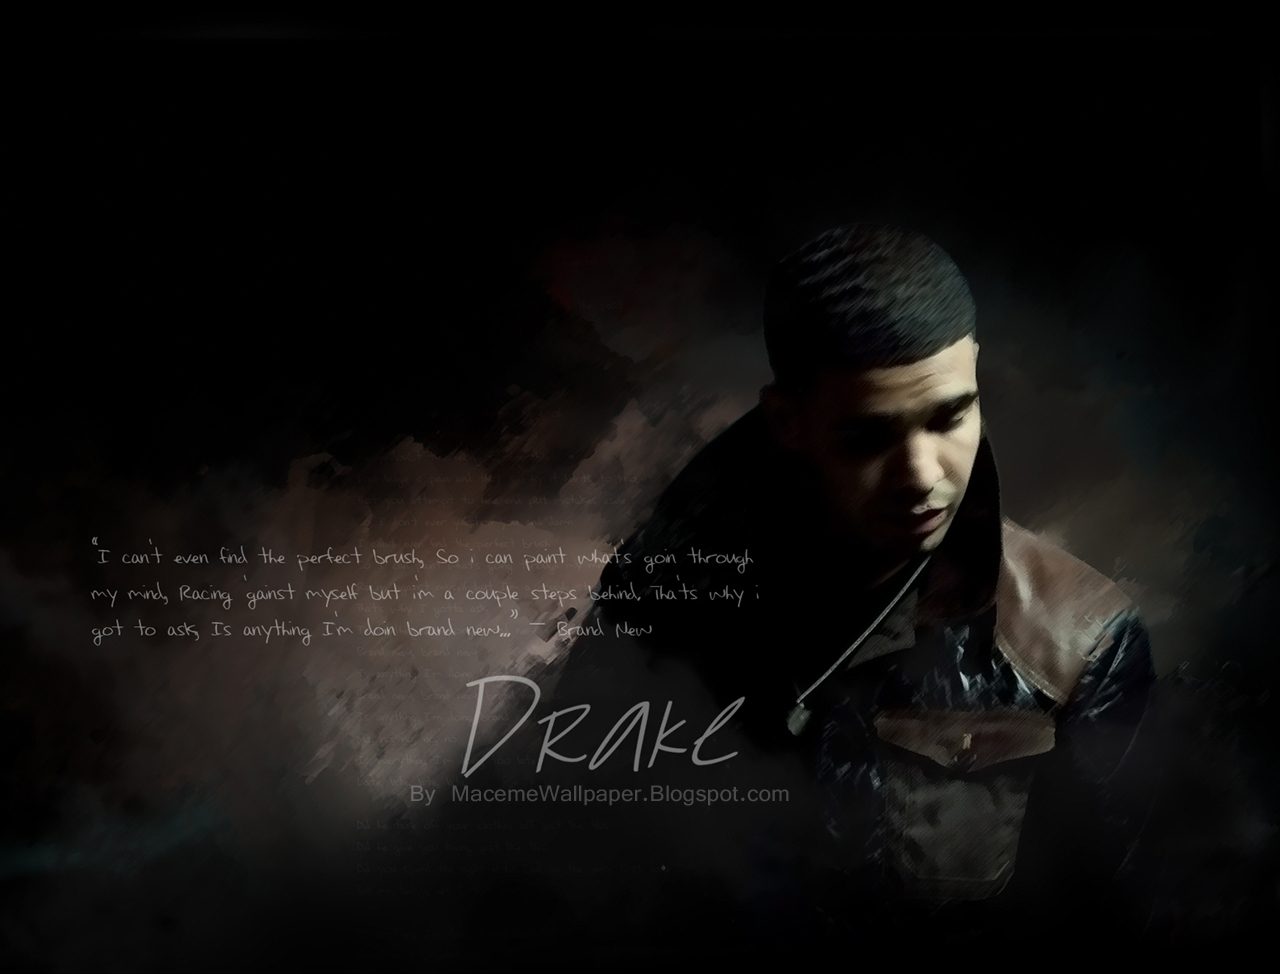 drake wallpaper maceme wallpaper